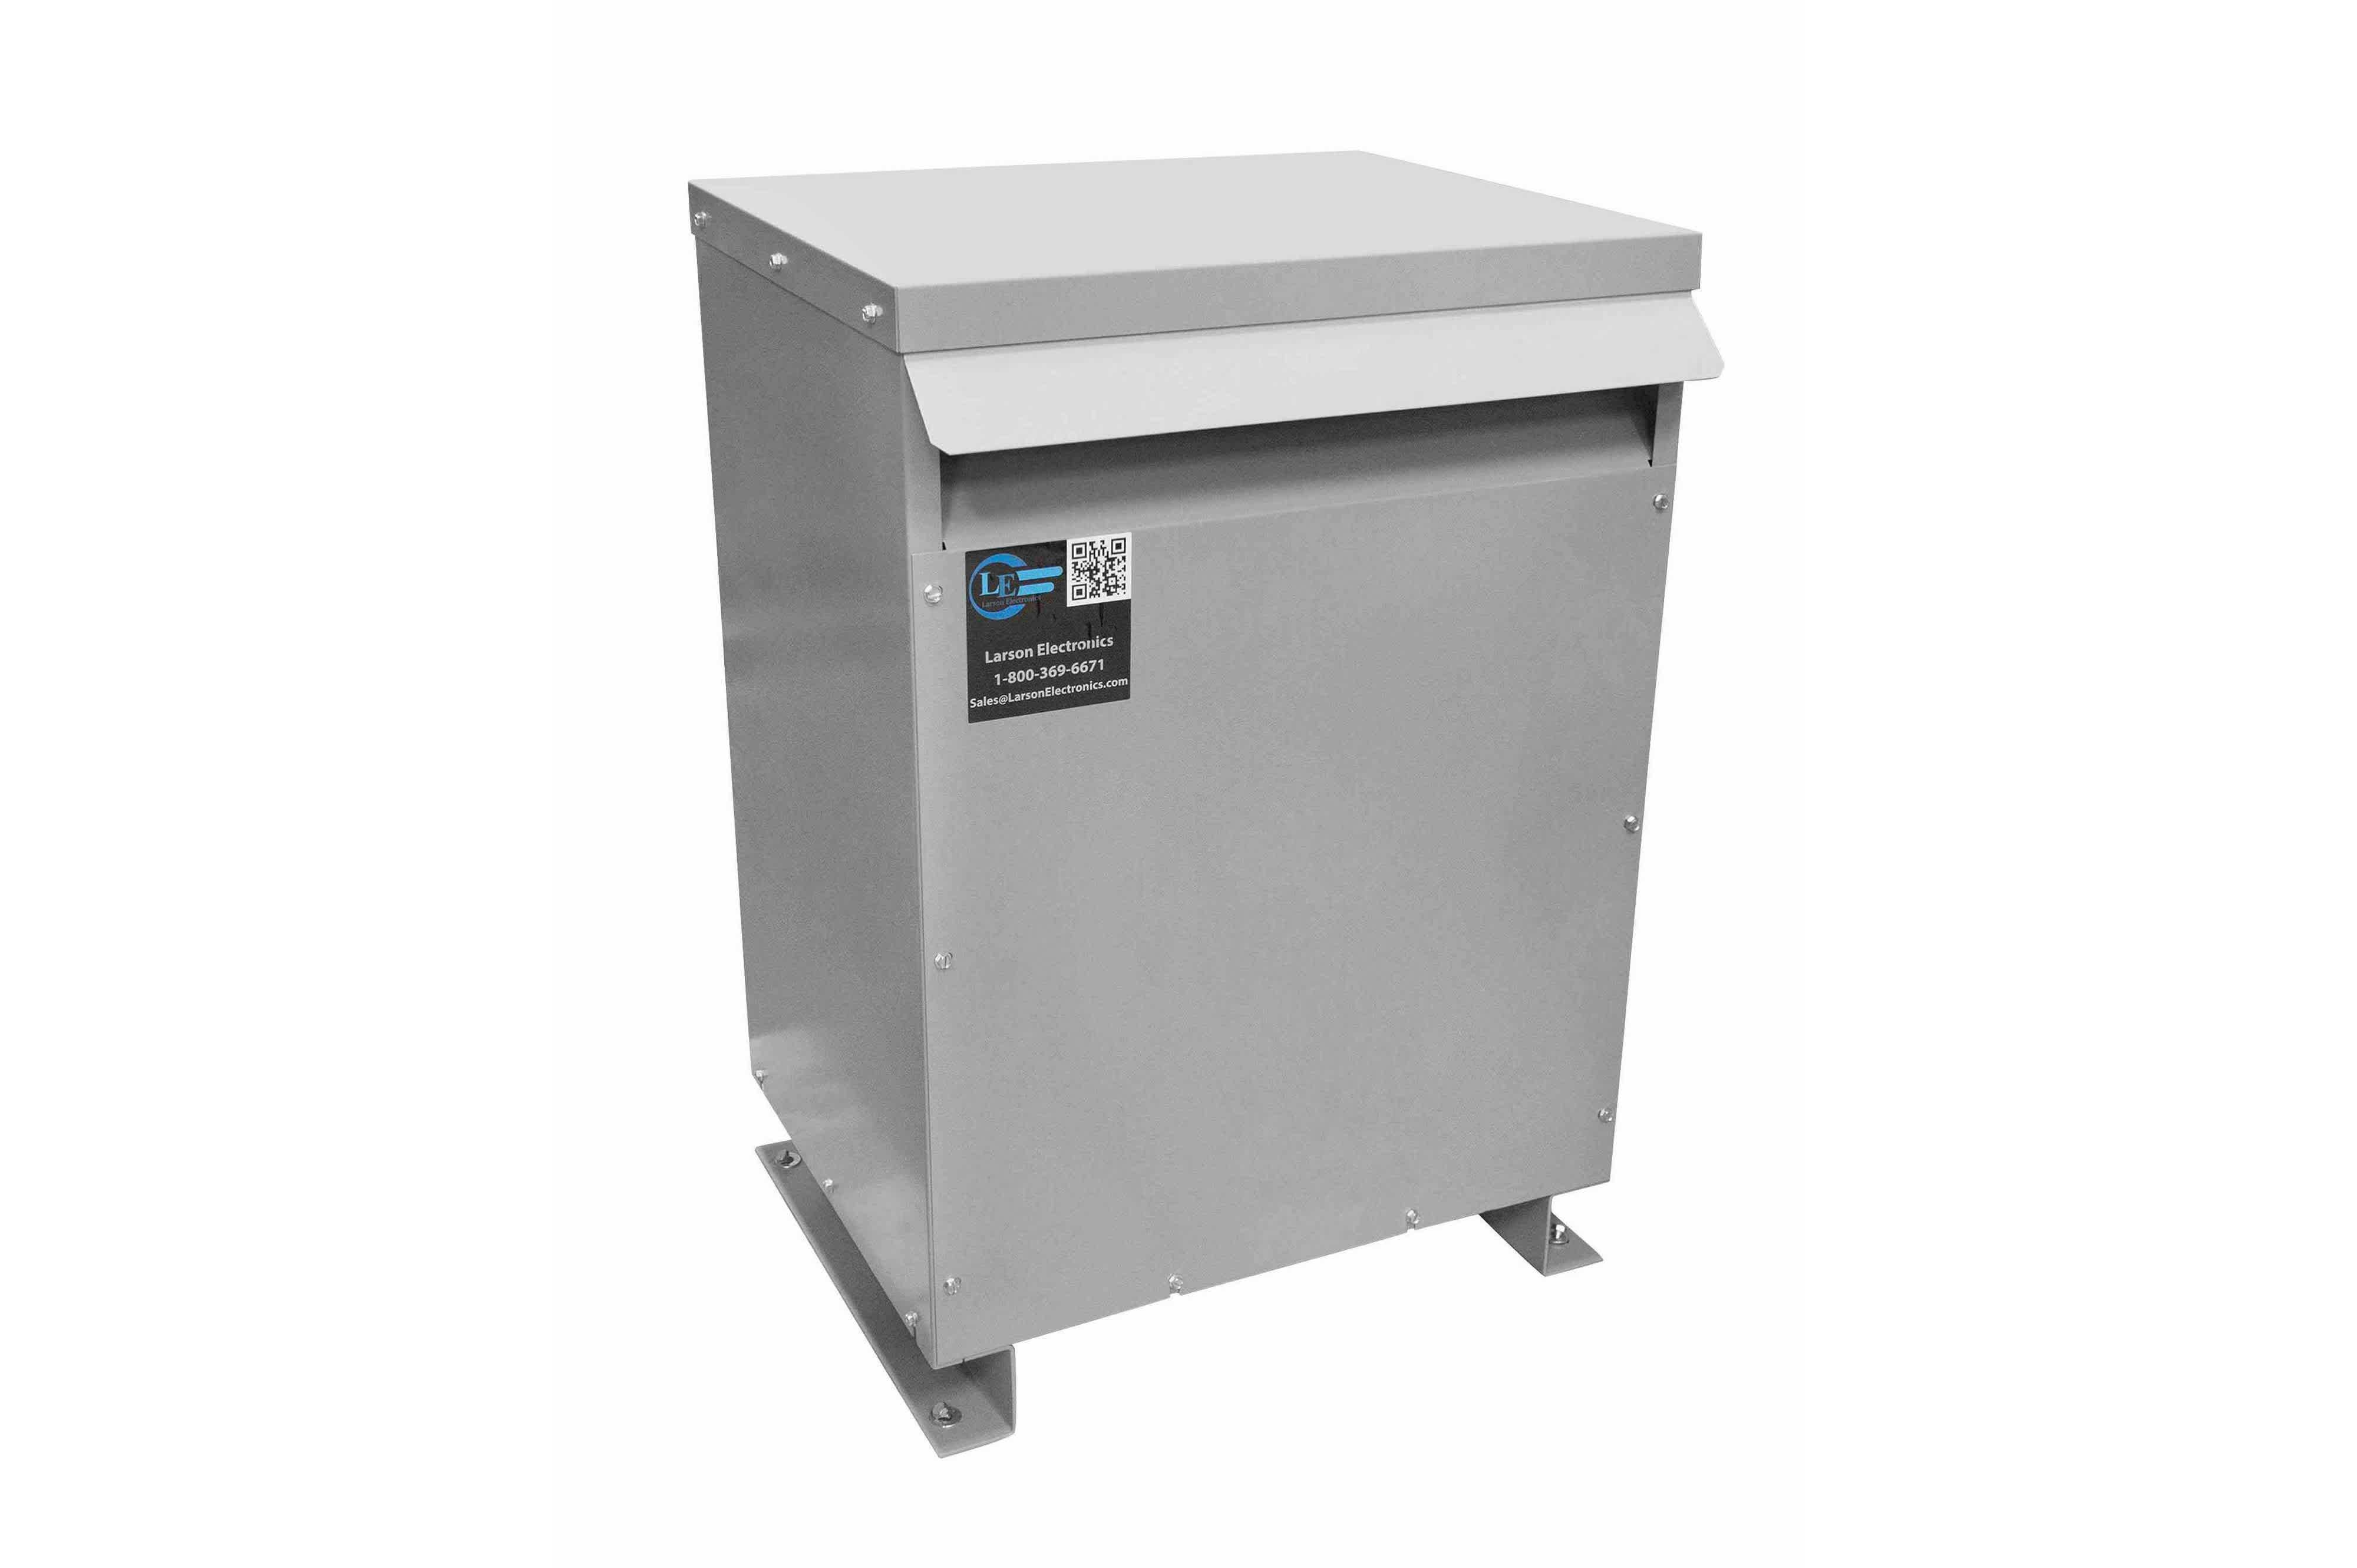 600 kVA 3PH Isolation Transformer, 575V Wye Primary, 240V Delta Secondary, N3R, Ventilated, 60 Hz